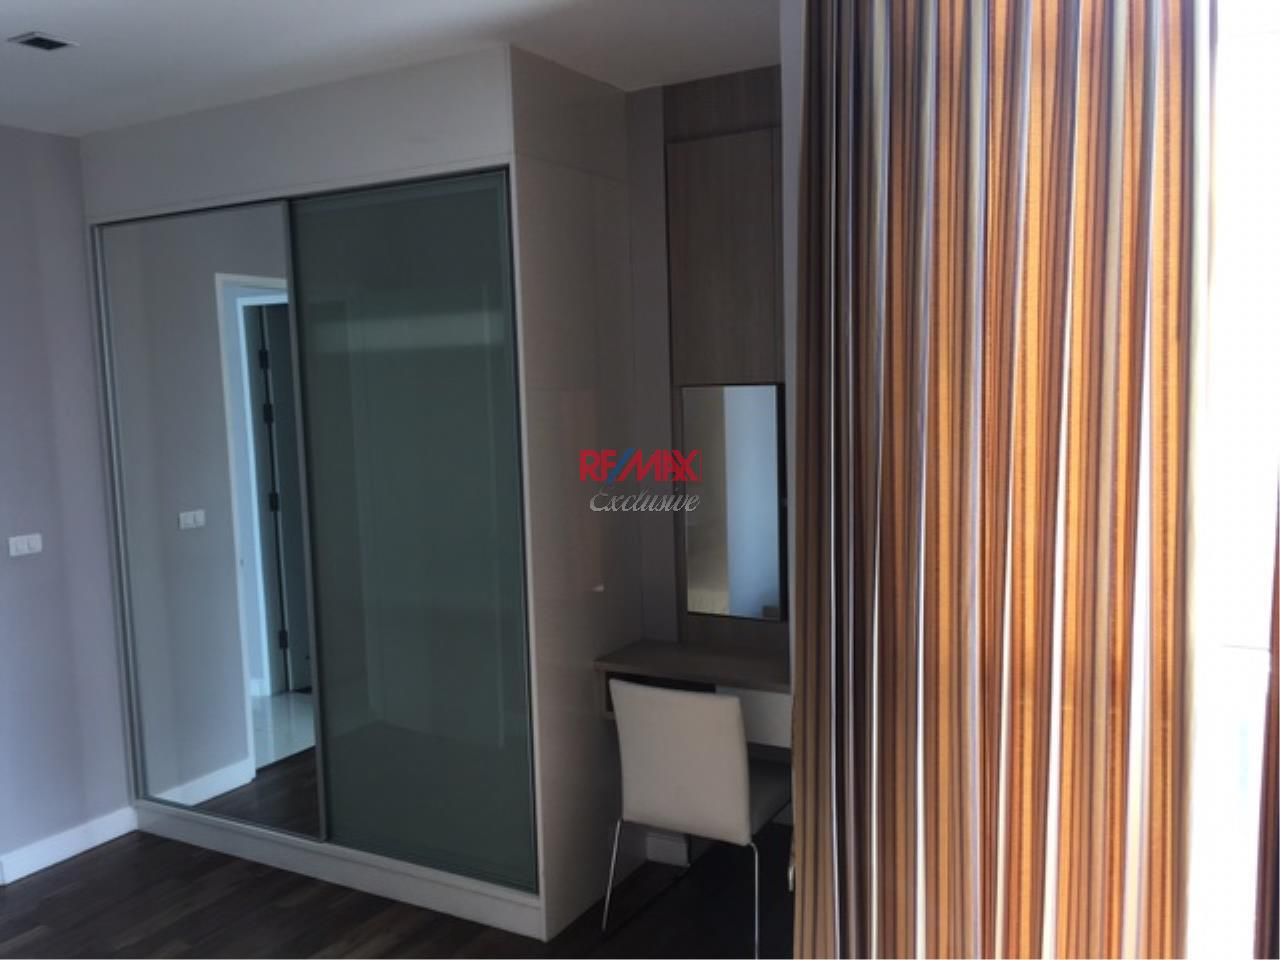 RE/MAX Exclusive Agency's The BLOOM, Sukhumvit 71.,2 Bedroom, 59 Sqm., Fully-Furnished, EXCLUSIVE UNIT, TOP FLOOR for RENT !! 7